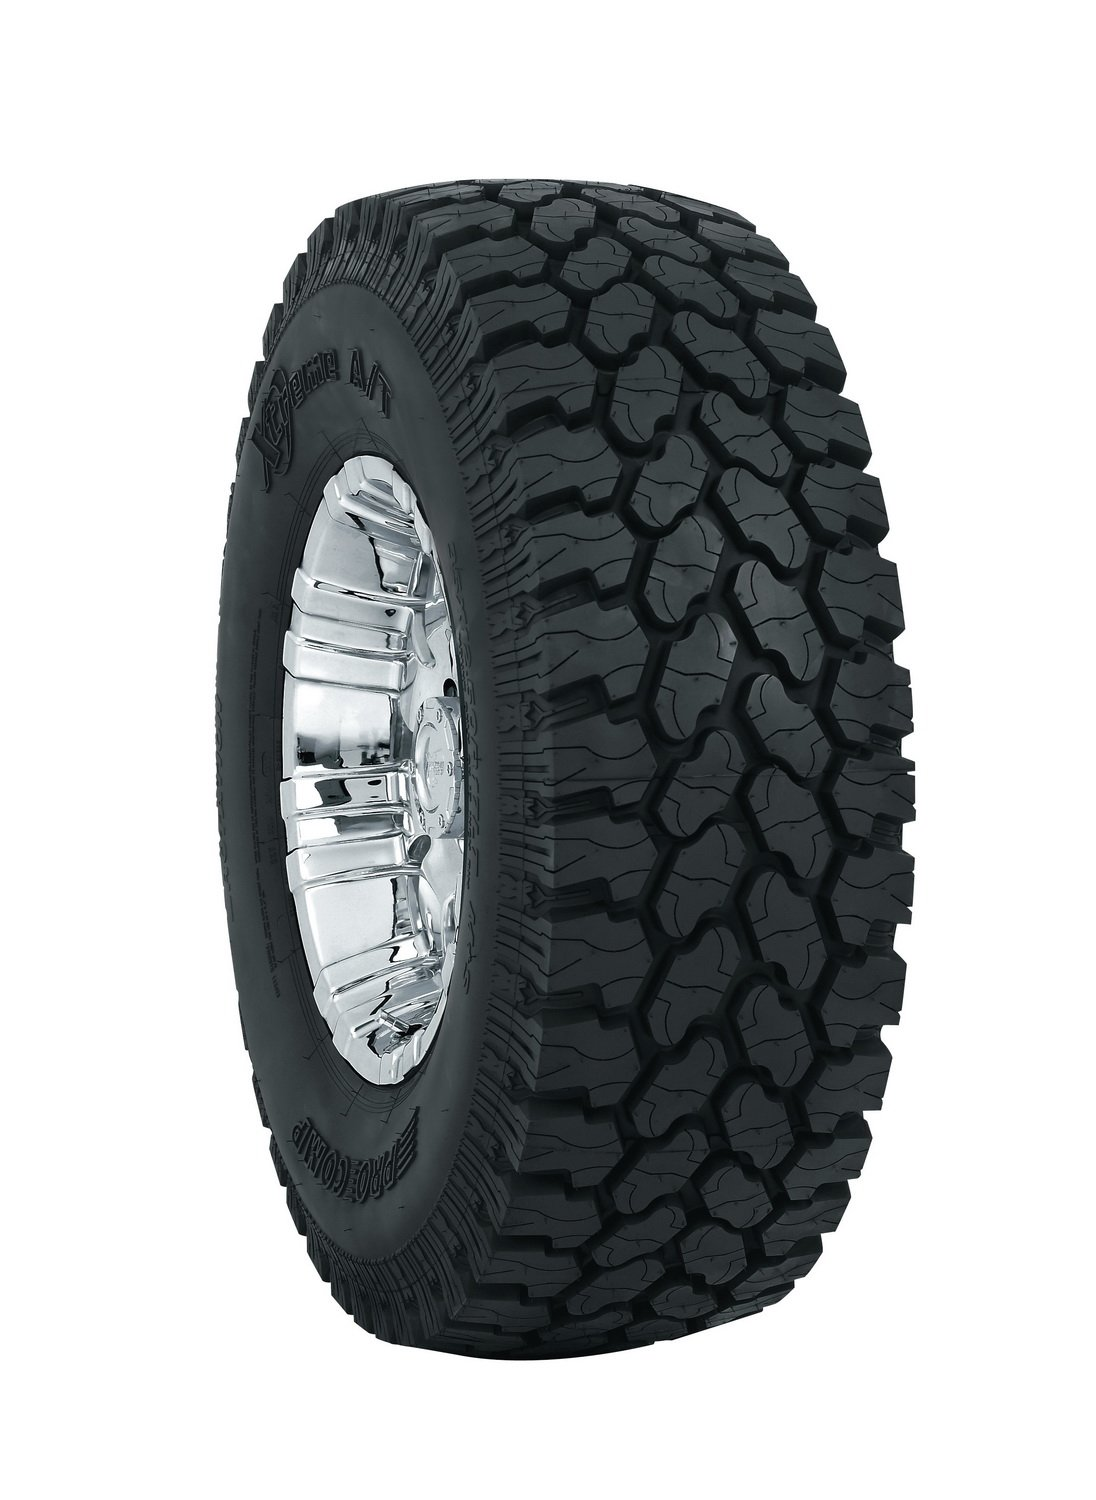 Pro Comp Tires 56305 Pro Comp Xtreme All Terrain Tire Size LT305/70R16 Outlined Black Letters Load Range E Max Load 3525 Tread Depth 19/32 Available White Supplies Last Pro Comp Xtreme All Terrain Tire